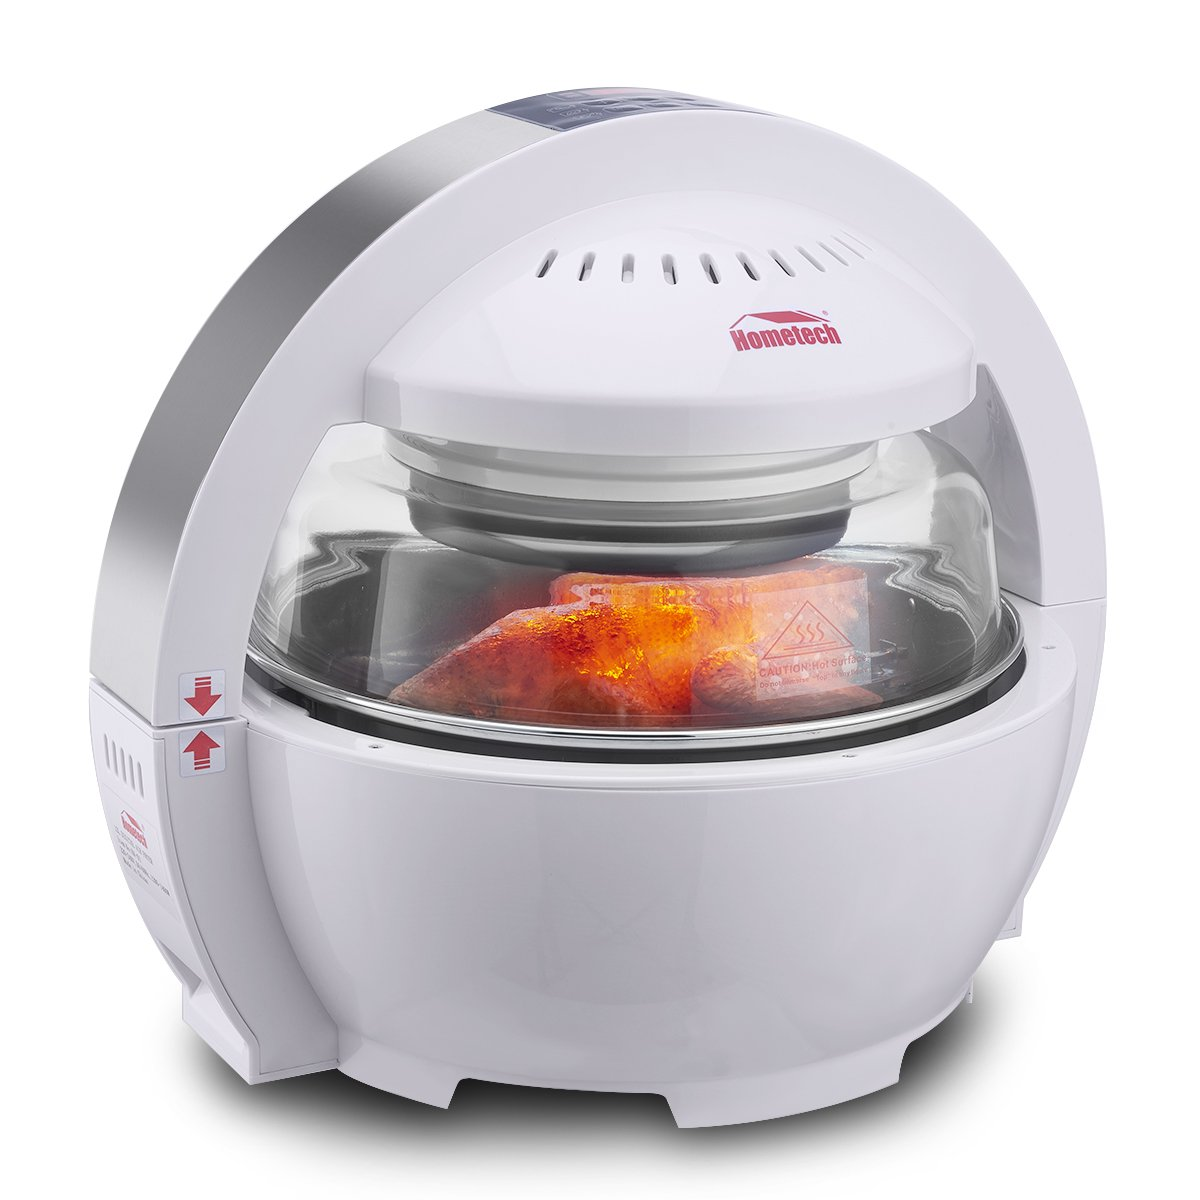 Hometech 13L Spaceship Air Fryer